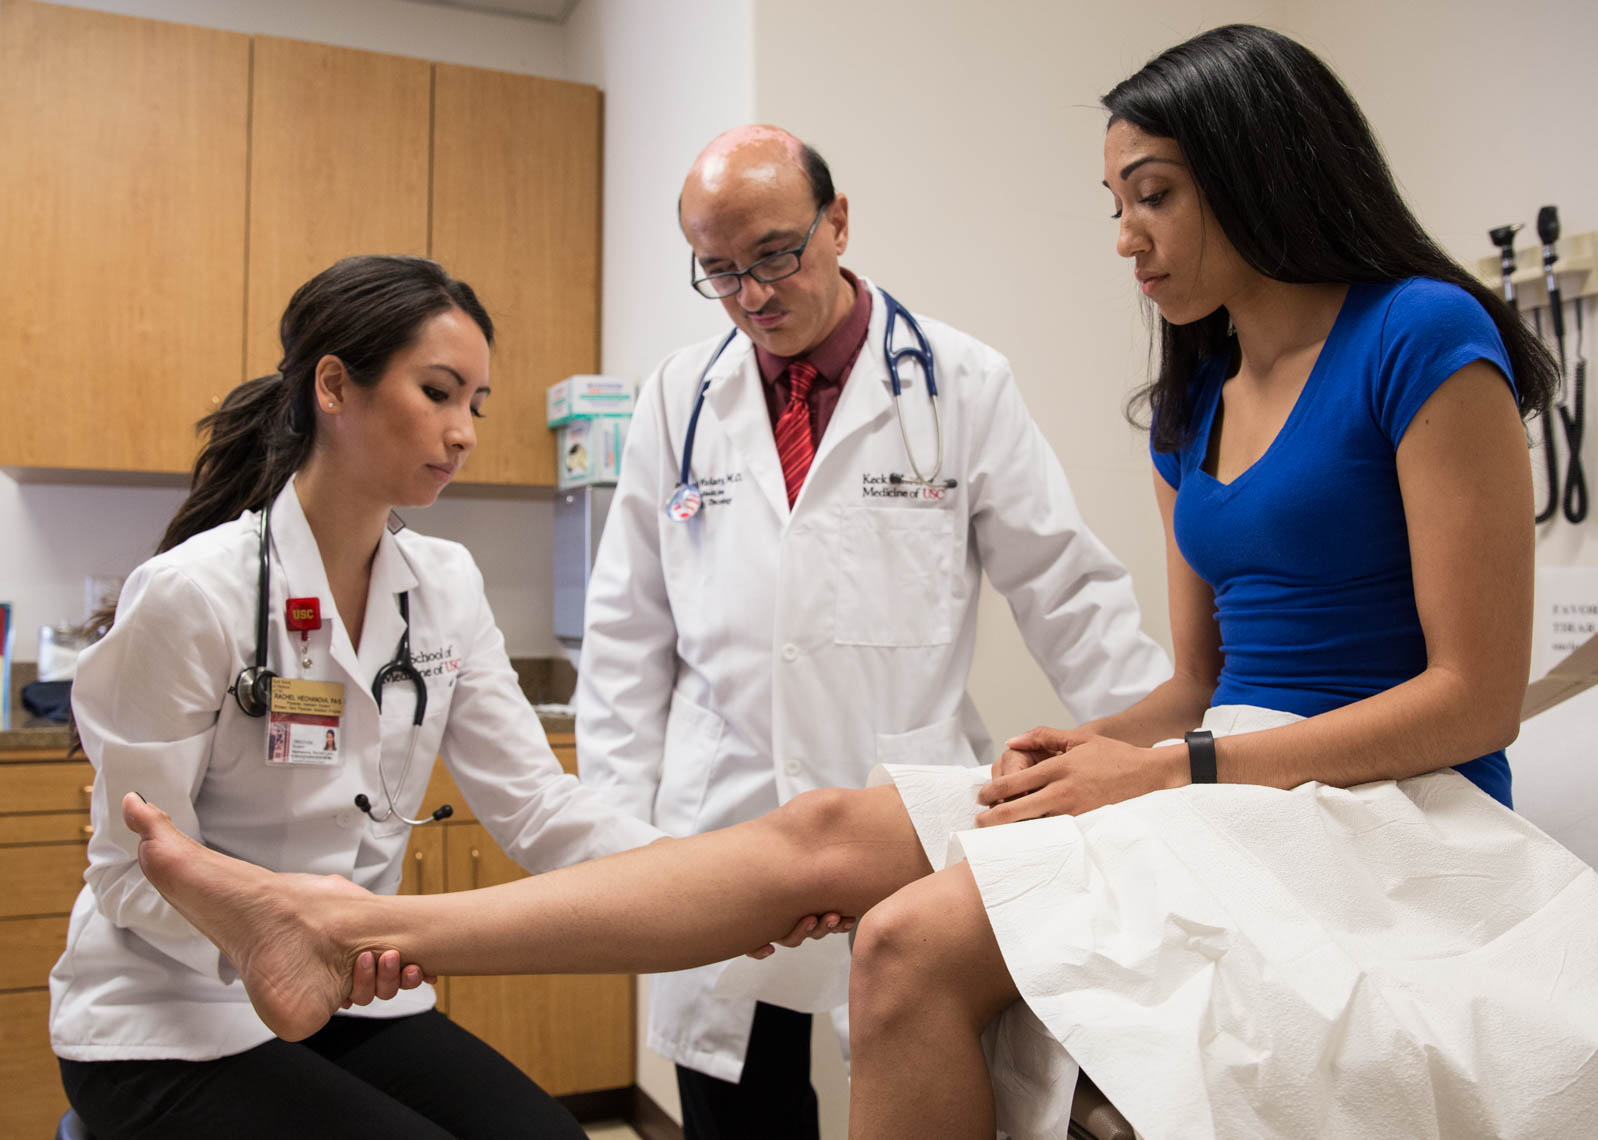 USC Physician Assistant Student Examines Patient